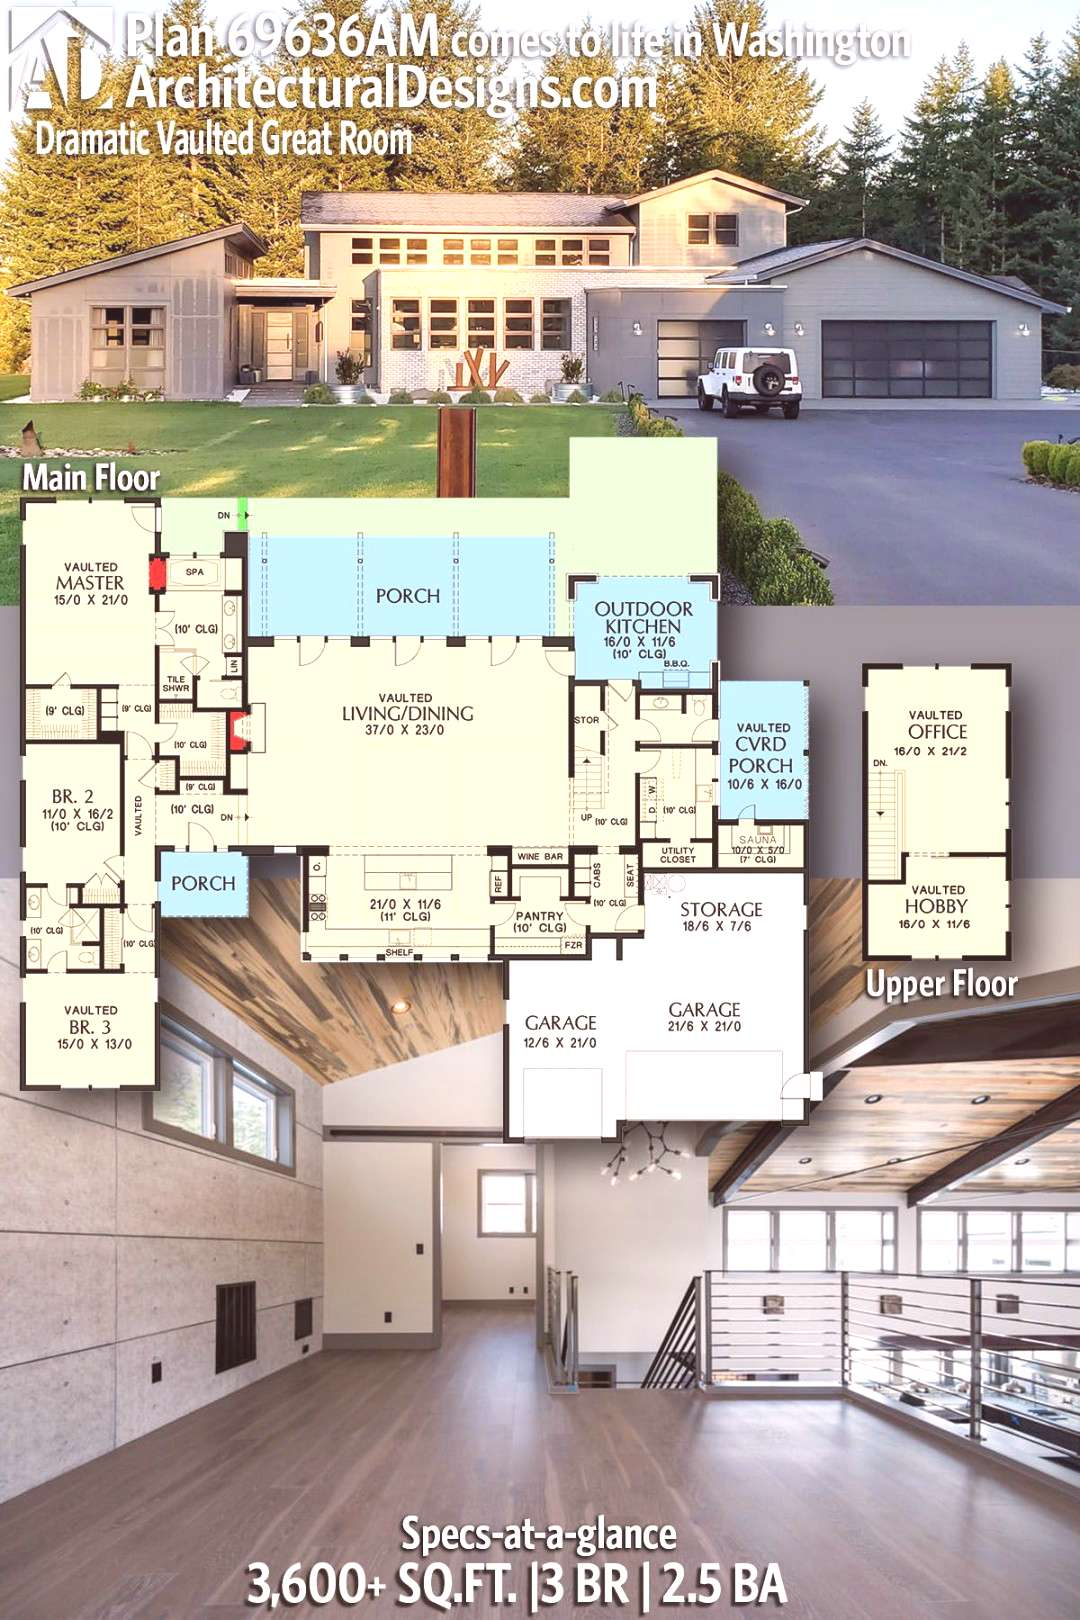 Plan 69636AM Dramatic Contemporary House Plan with Vaulted Great Room Modern House Plan 69636AM gi